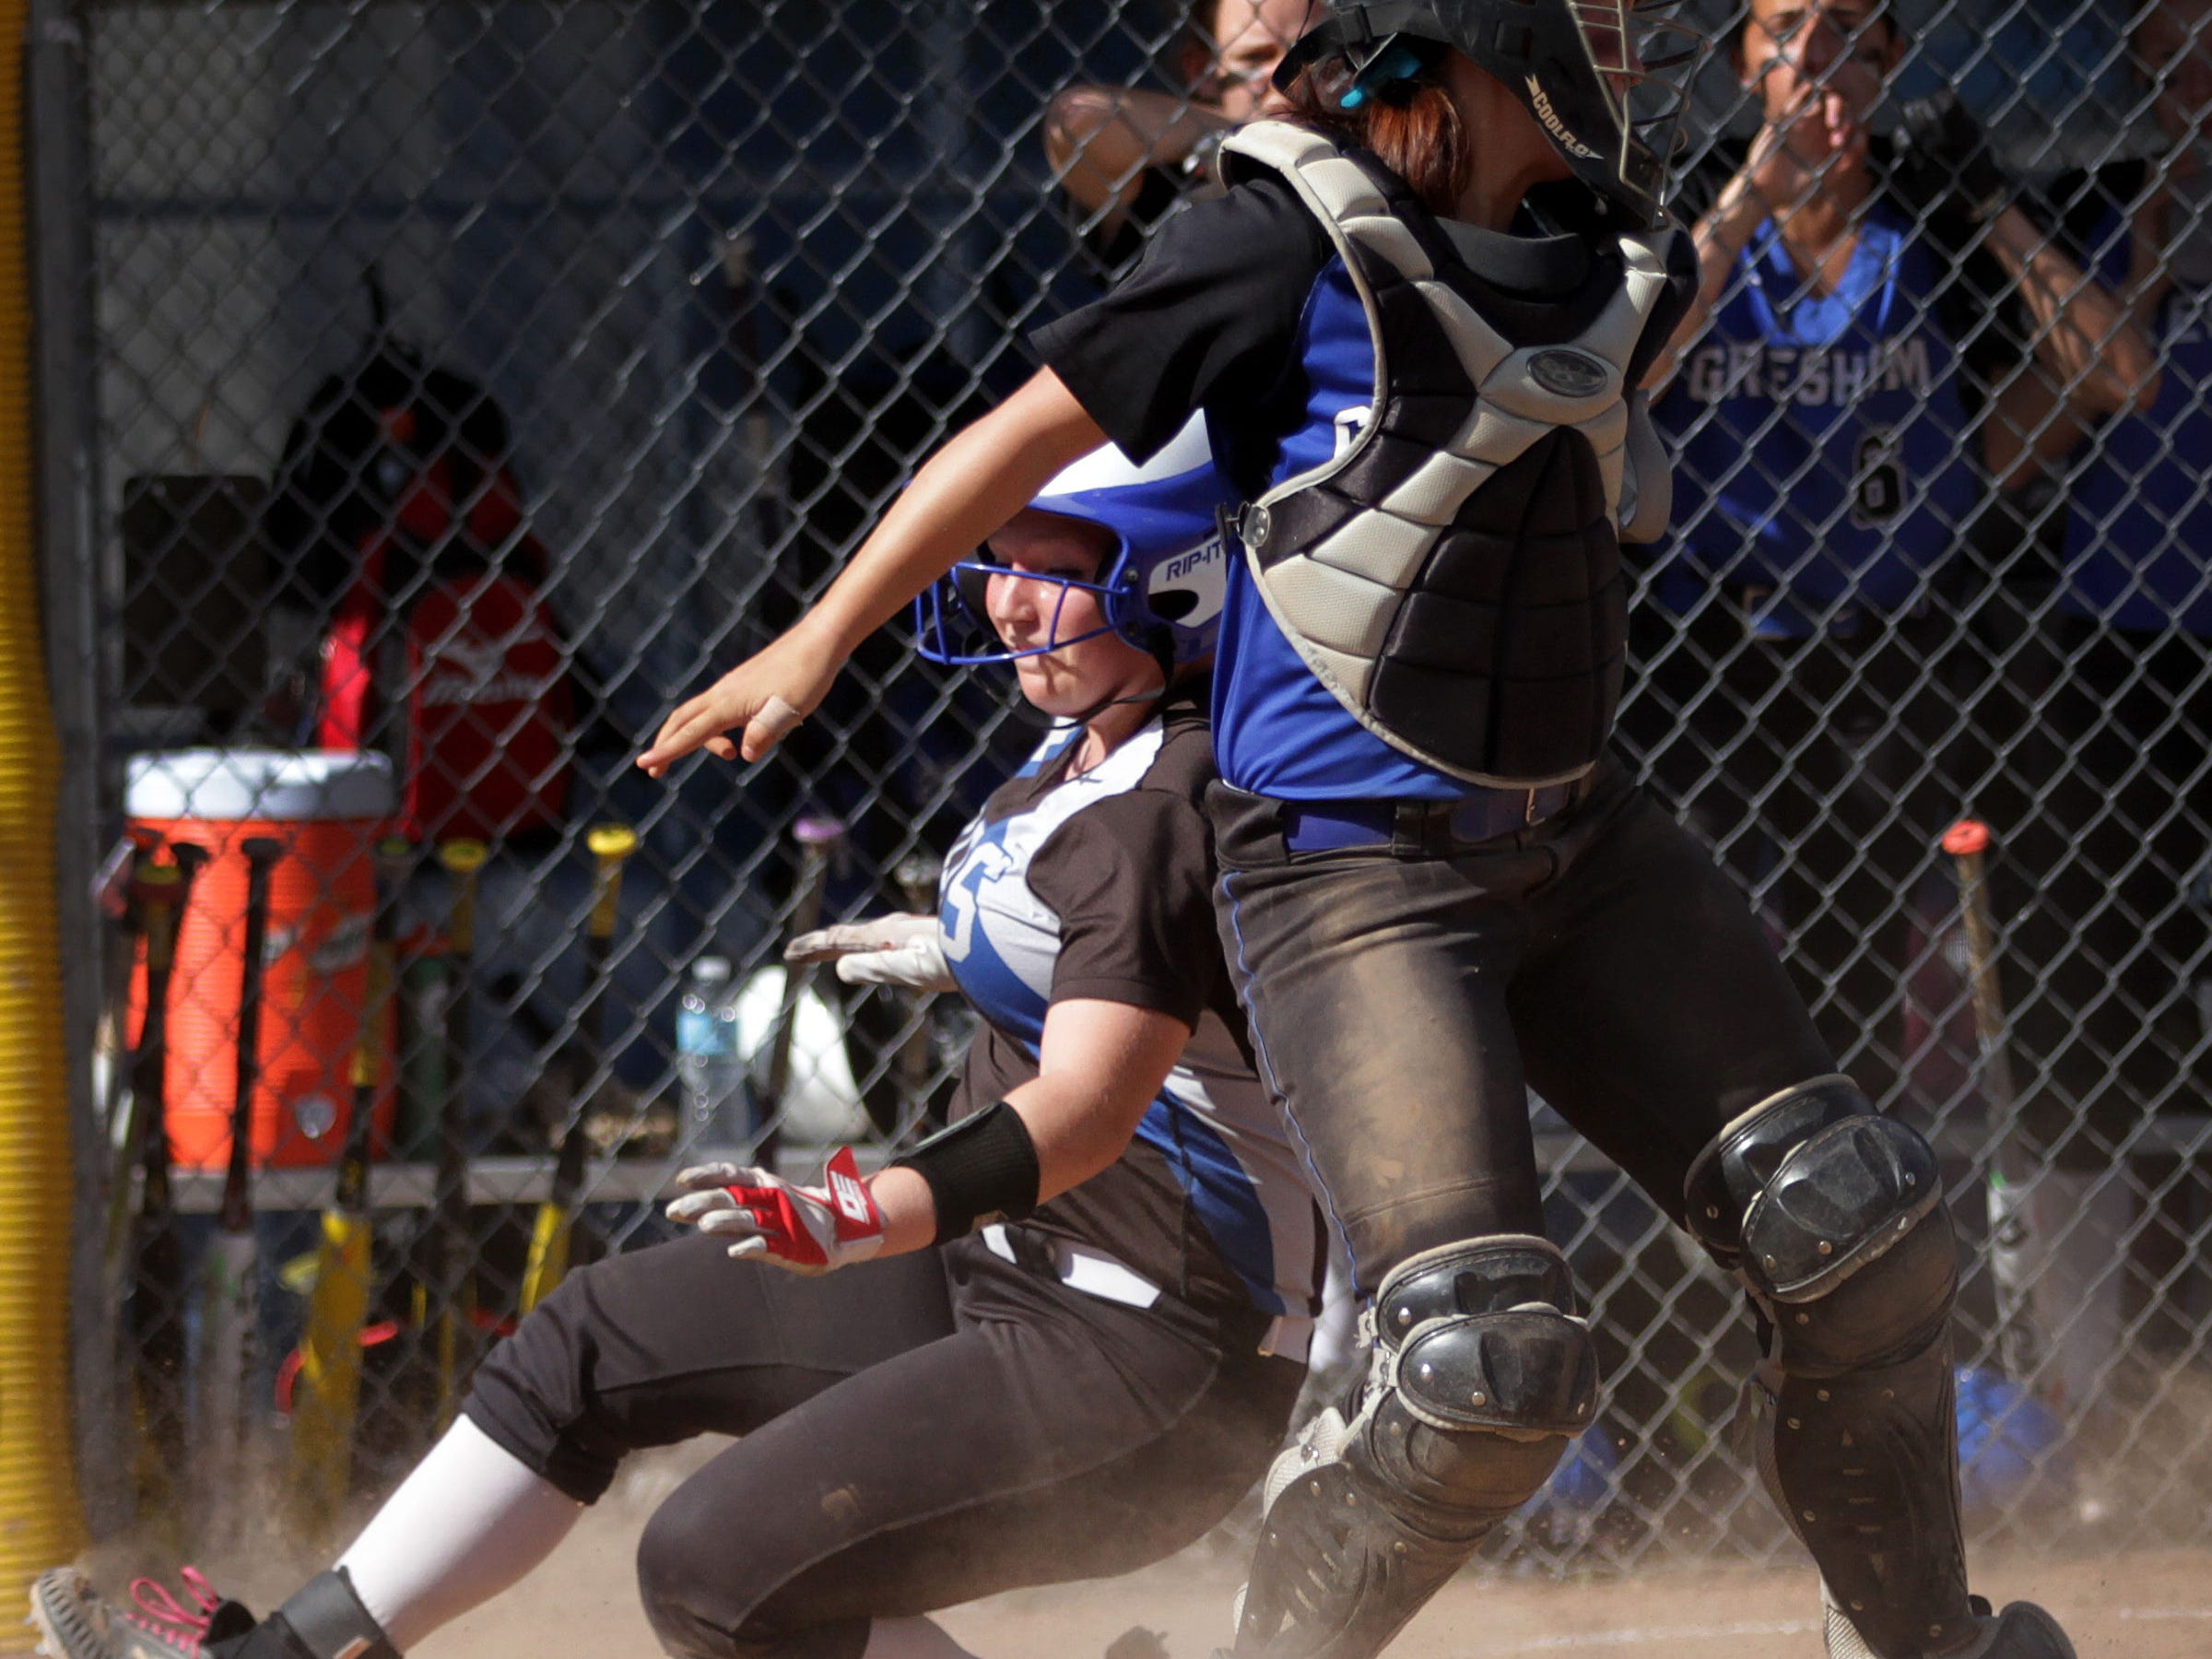 Gresham's Bree Gibbons (13) tags McNary's Madisen Oliver (3) out at home in the Gresham vs. McNary softball game, in the first round of the OSAA class 6A state playoffs, at McNary High School in Keizer on Monday, May 25, 2015. McNary won the game 11-7.